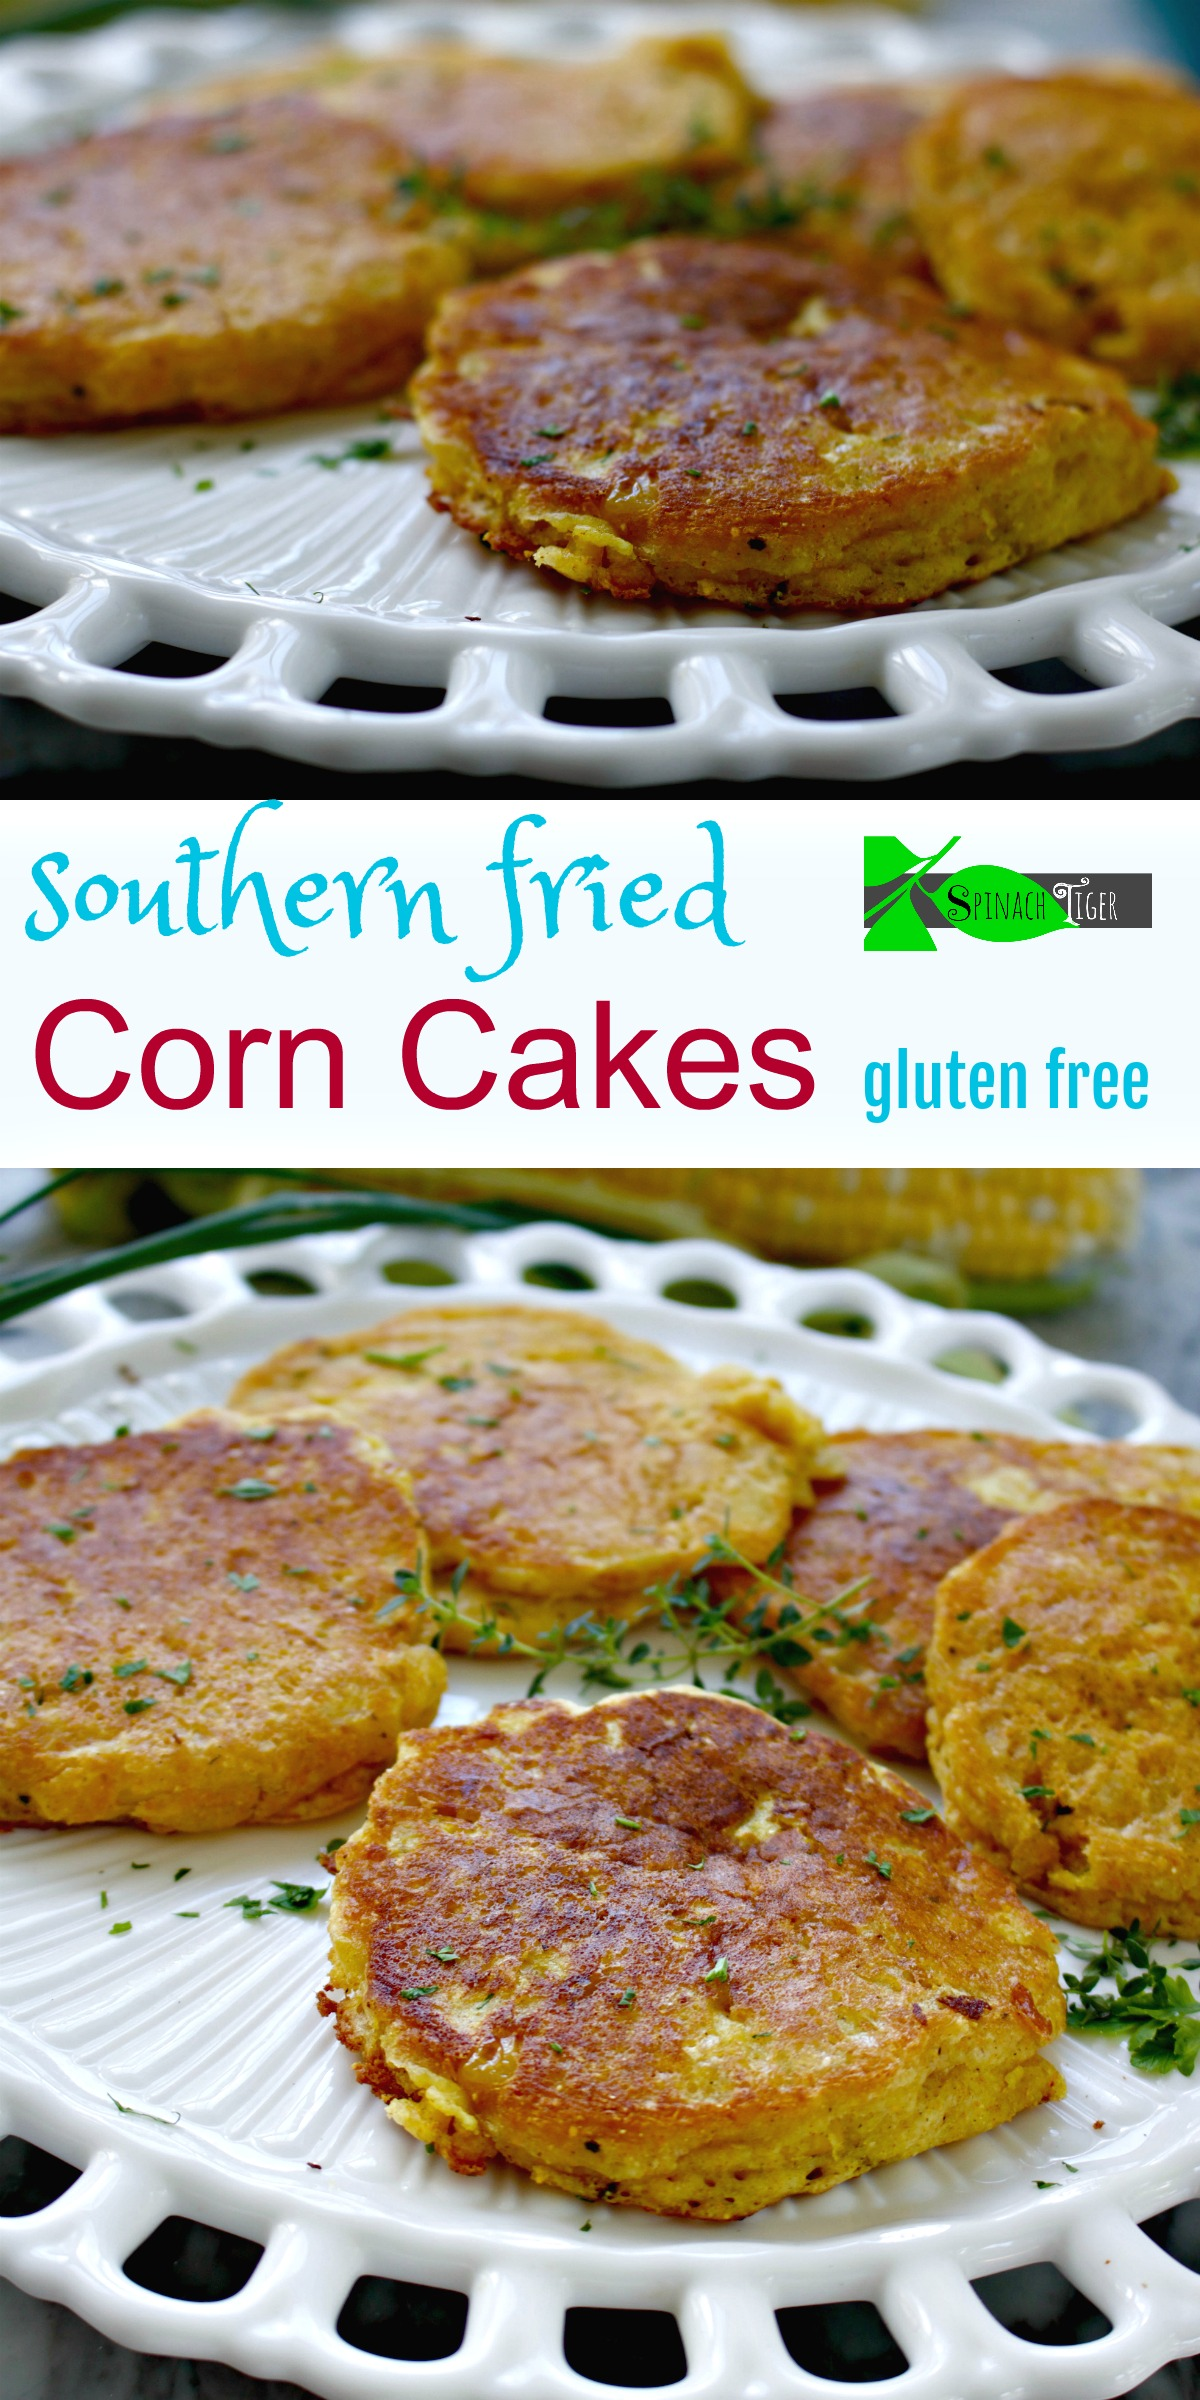 Southern Fried Corn Cakes Recipe from Spinach Tiger